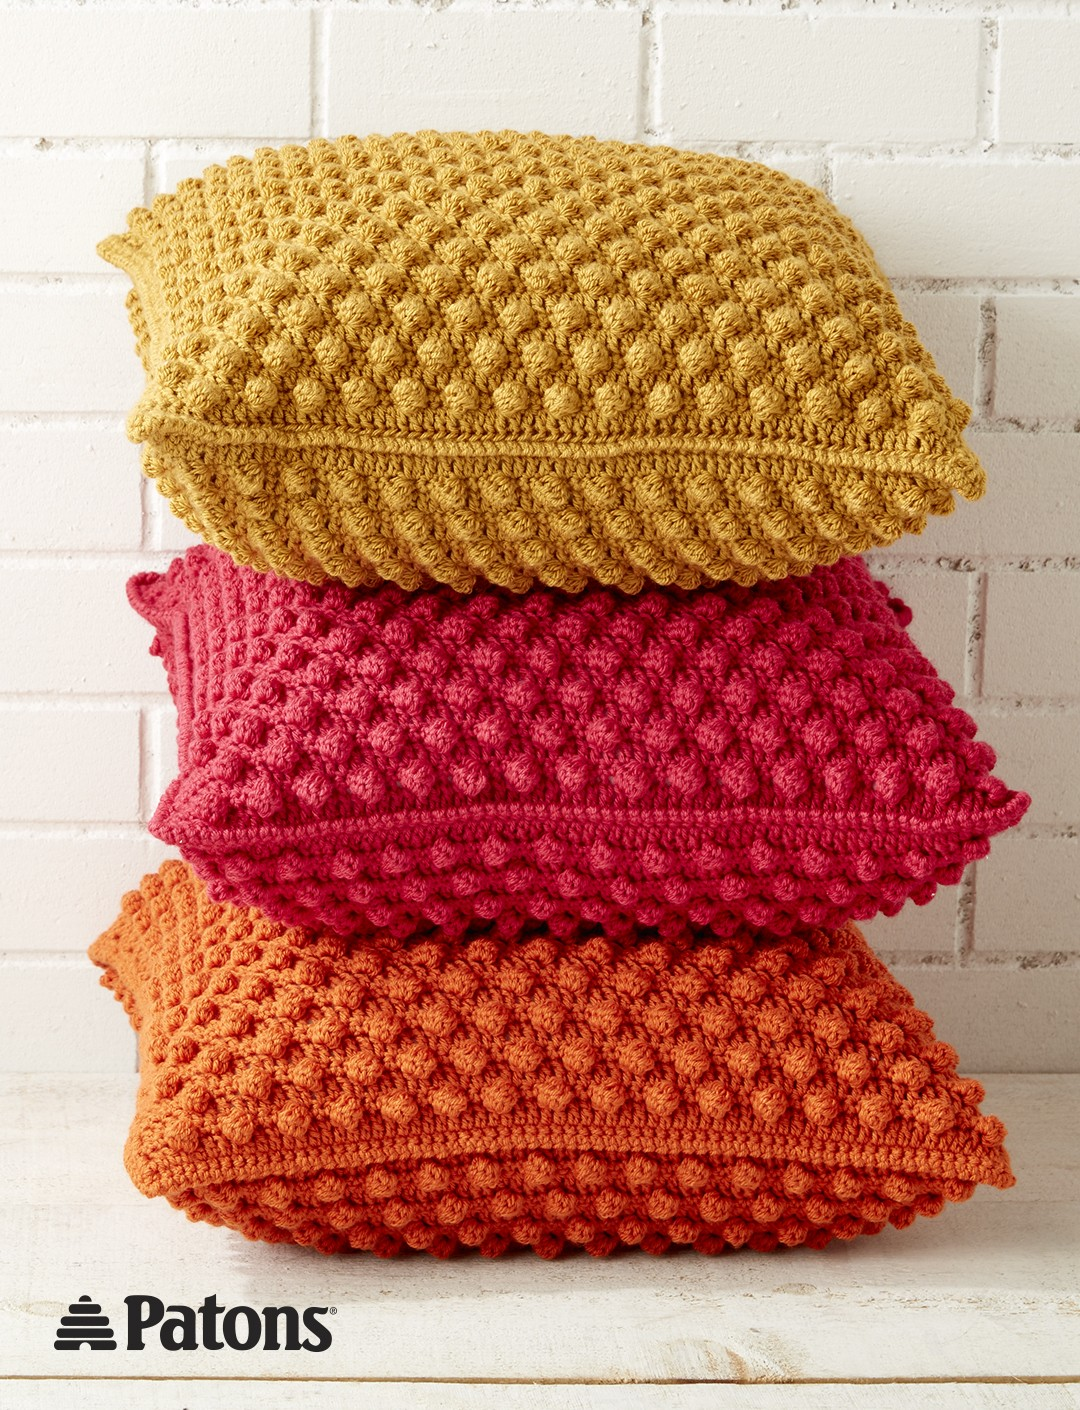 crochet pillow bobble-licious pillows mebnpqa